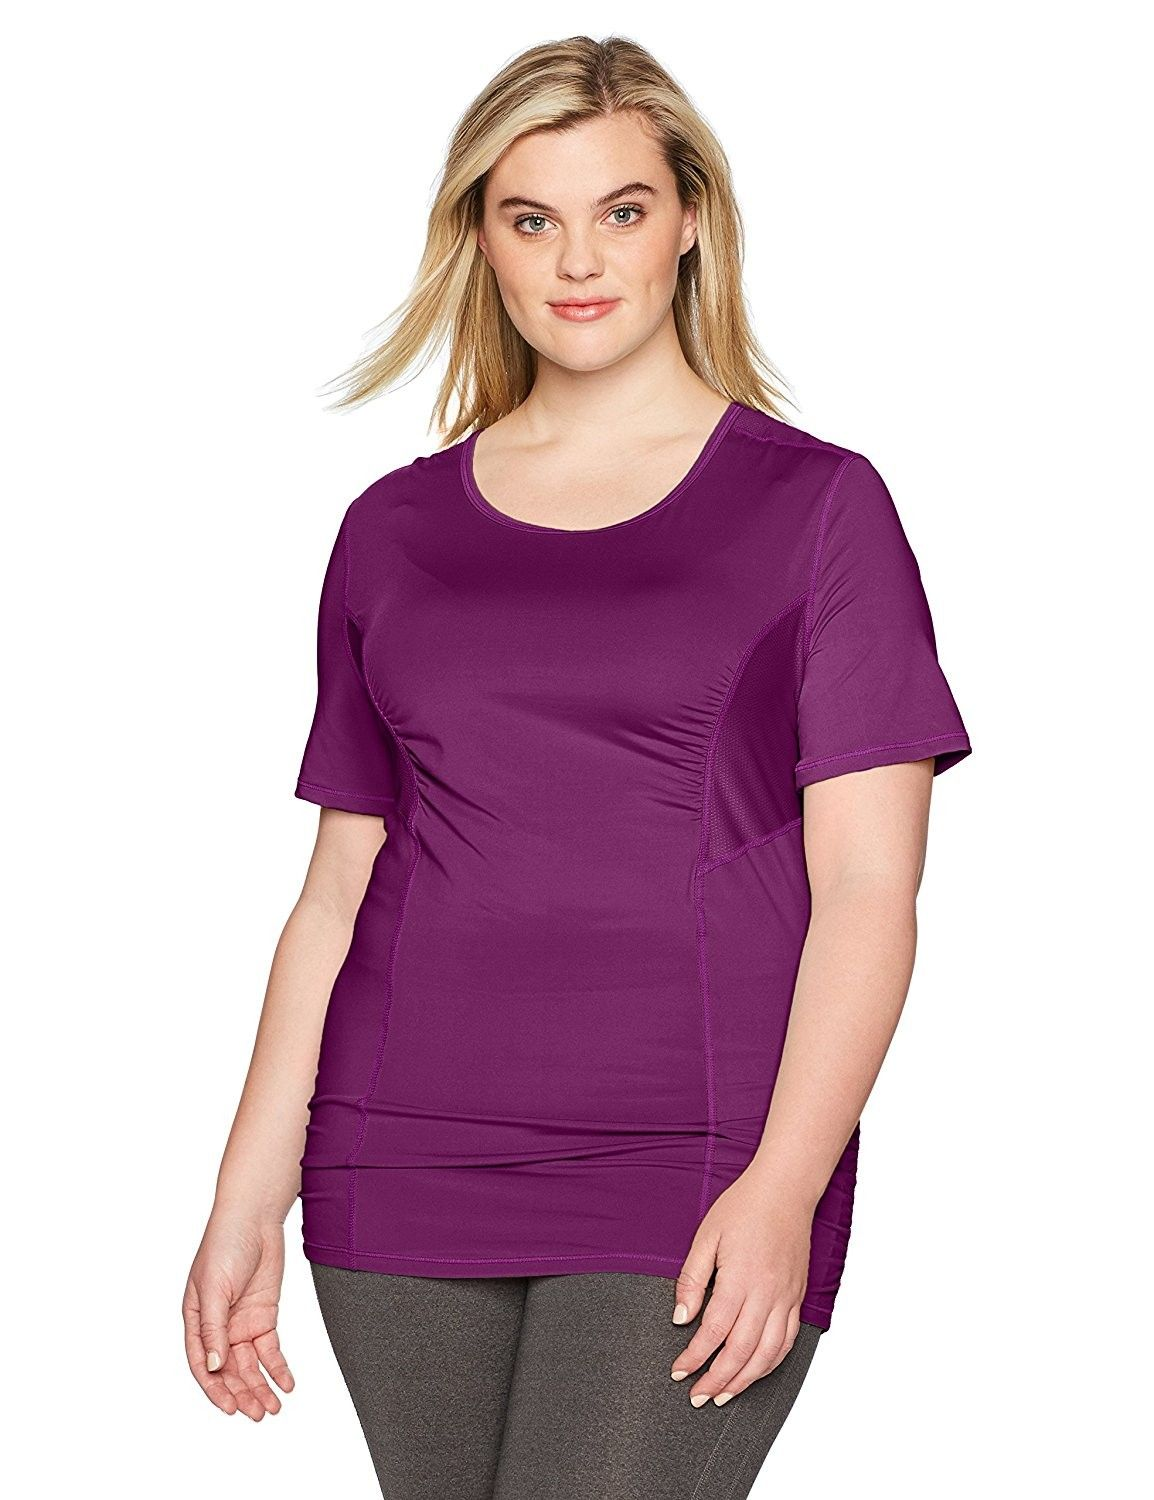 e9098a01f Women's Plus Size Active Mesh Performance Tee - Deep Plum - CB18754YK2Z, Women's Clothing, Active, Active Shirts & Tees #women #clothing #fashion  #style ...